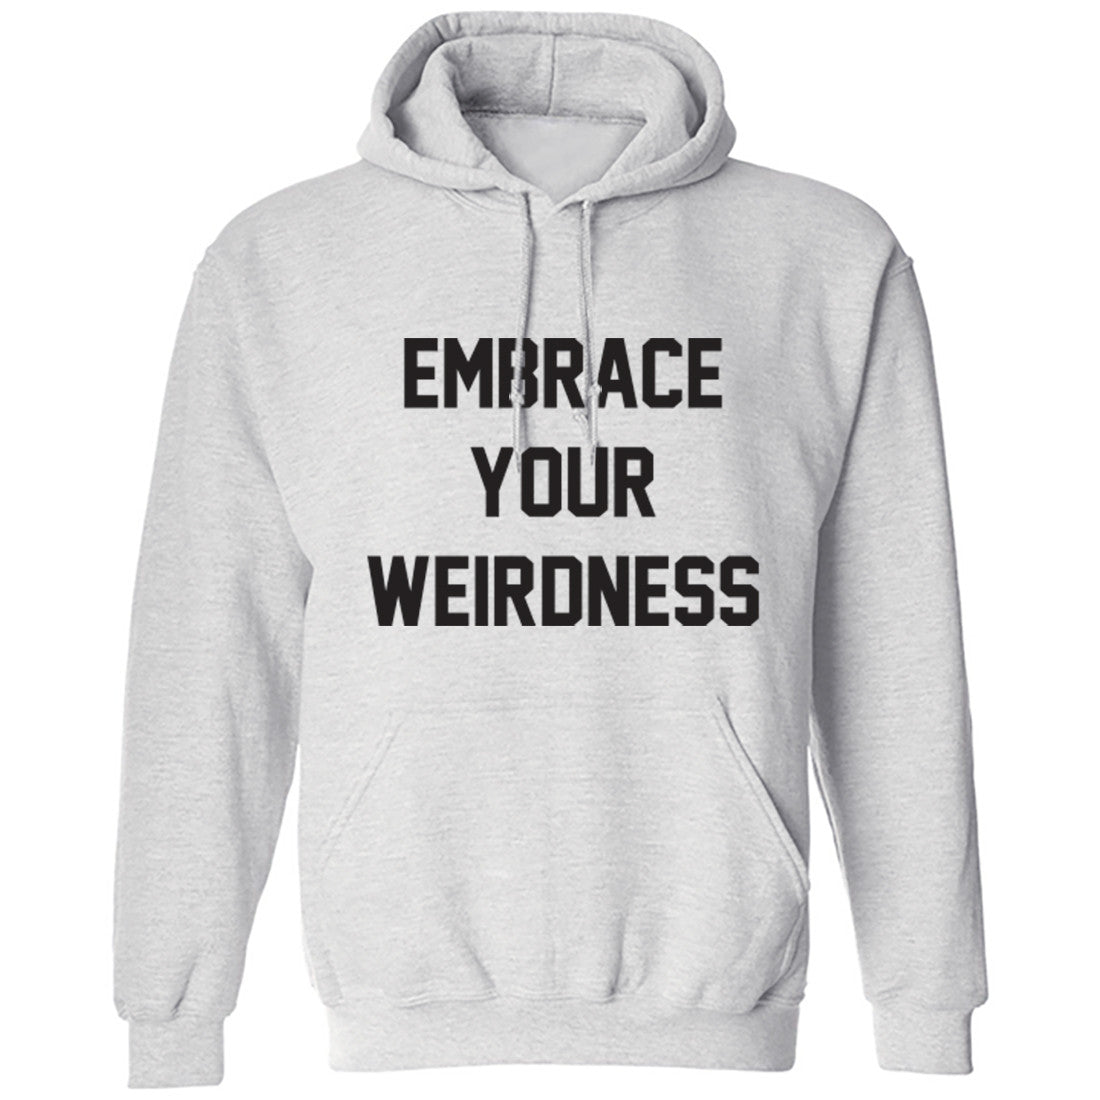 Embrace Your Weirdness Unisex Hoodie K0065 - Illustrated Identity Ltd.